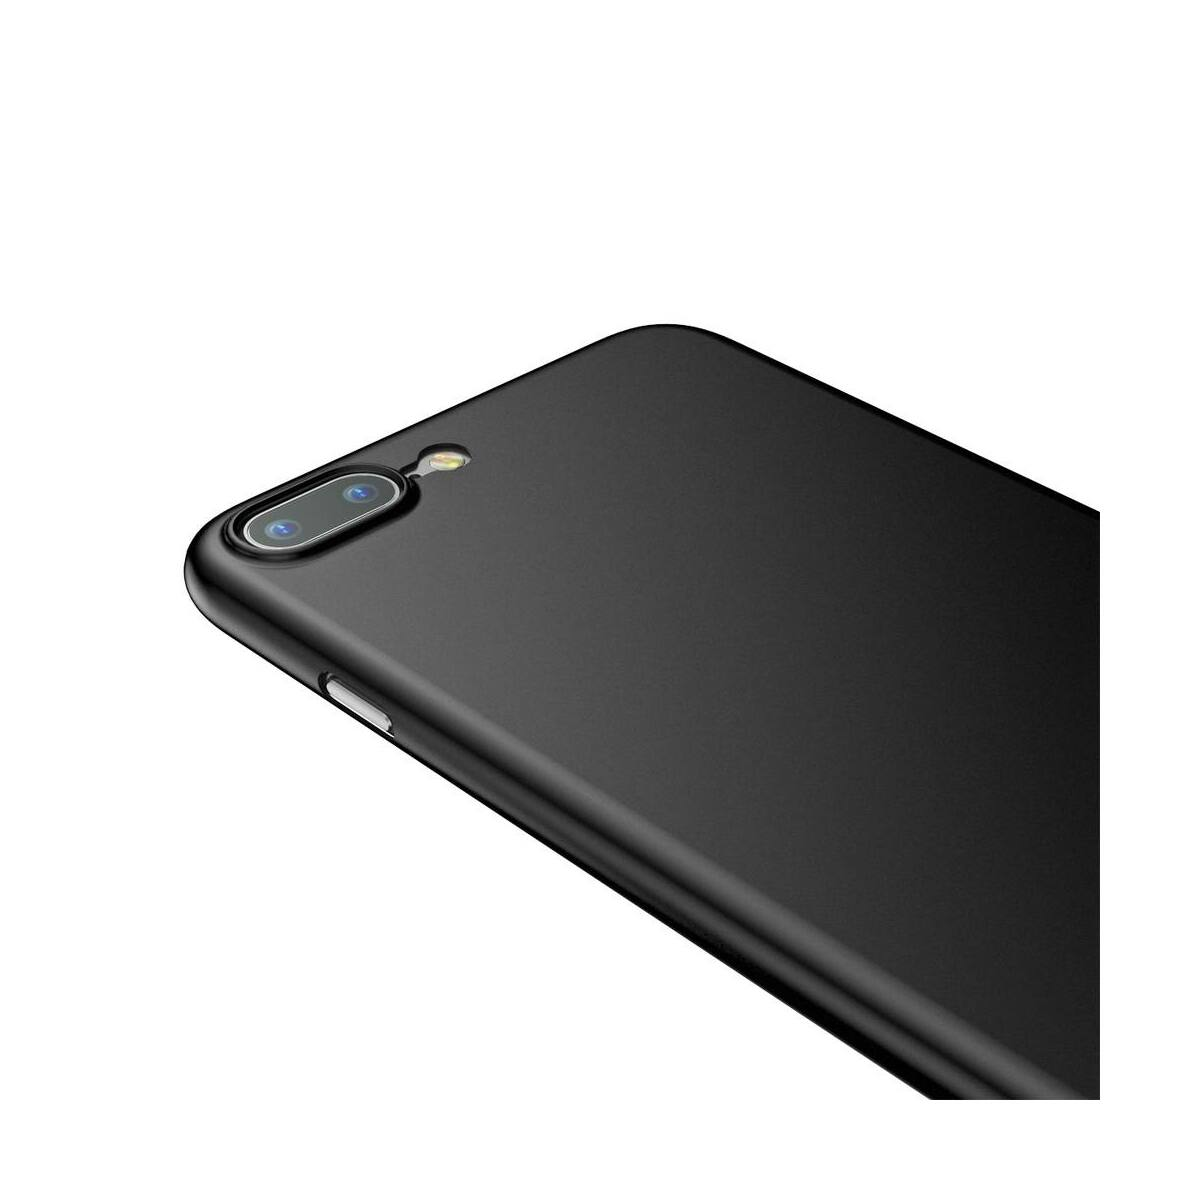 Baseus iPhone 8/7 Plus tok, Wing, fekete (WIAPIPH7P-E1A)